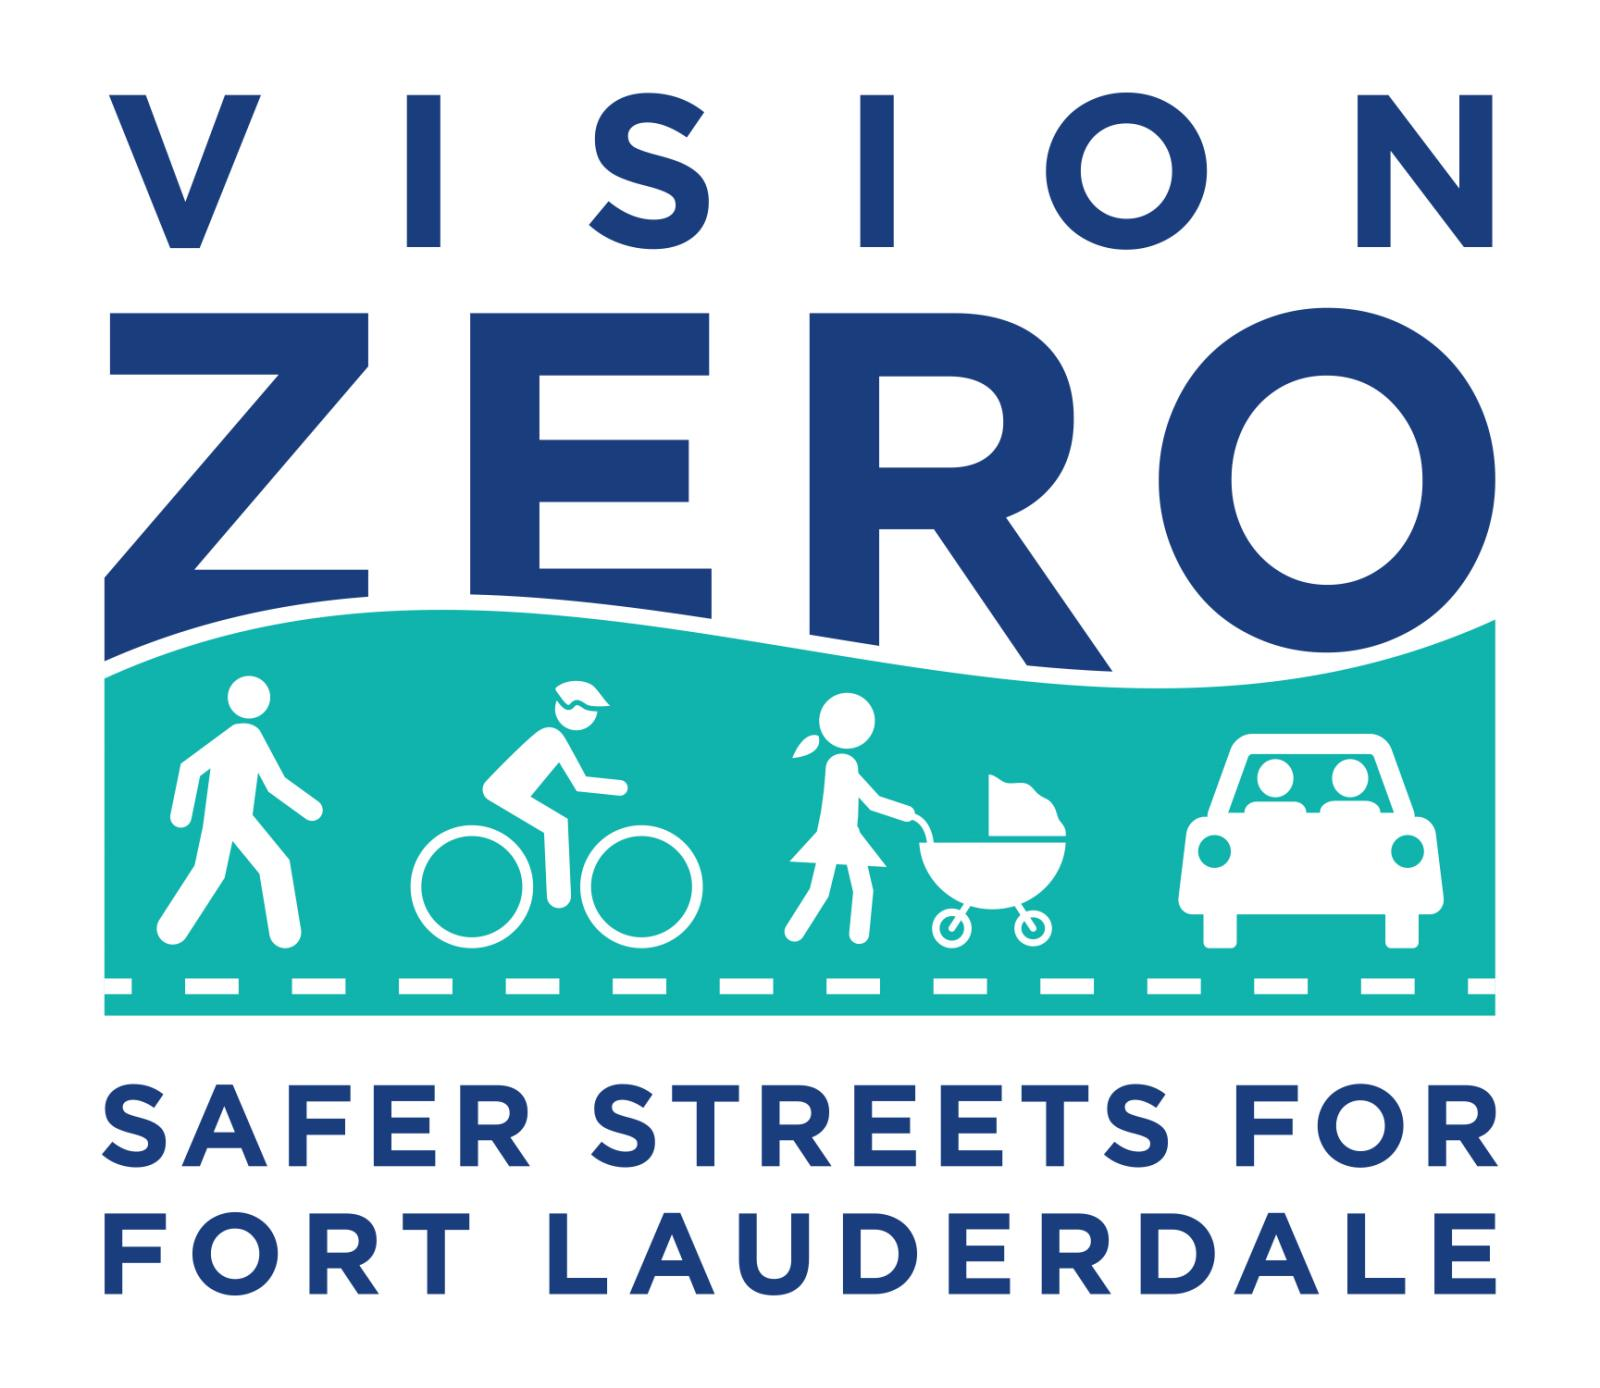 City Of Fort Lauderdale Fl Vision Zero Safer Streets For Fort Lauderdale